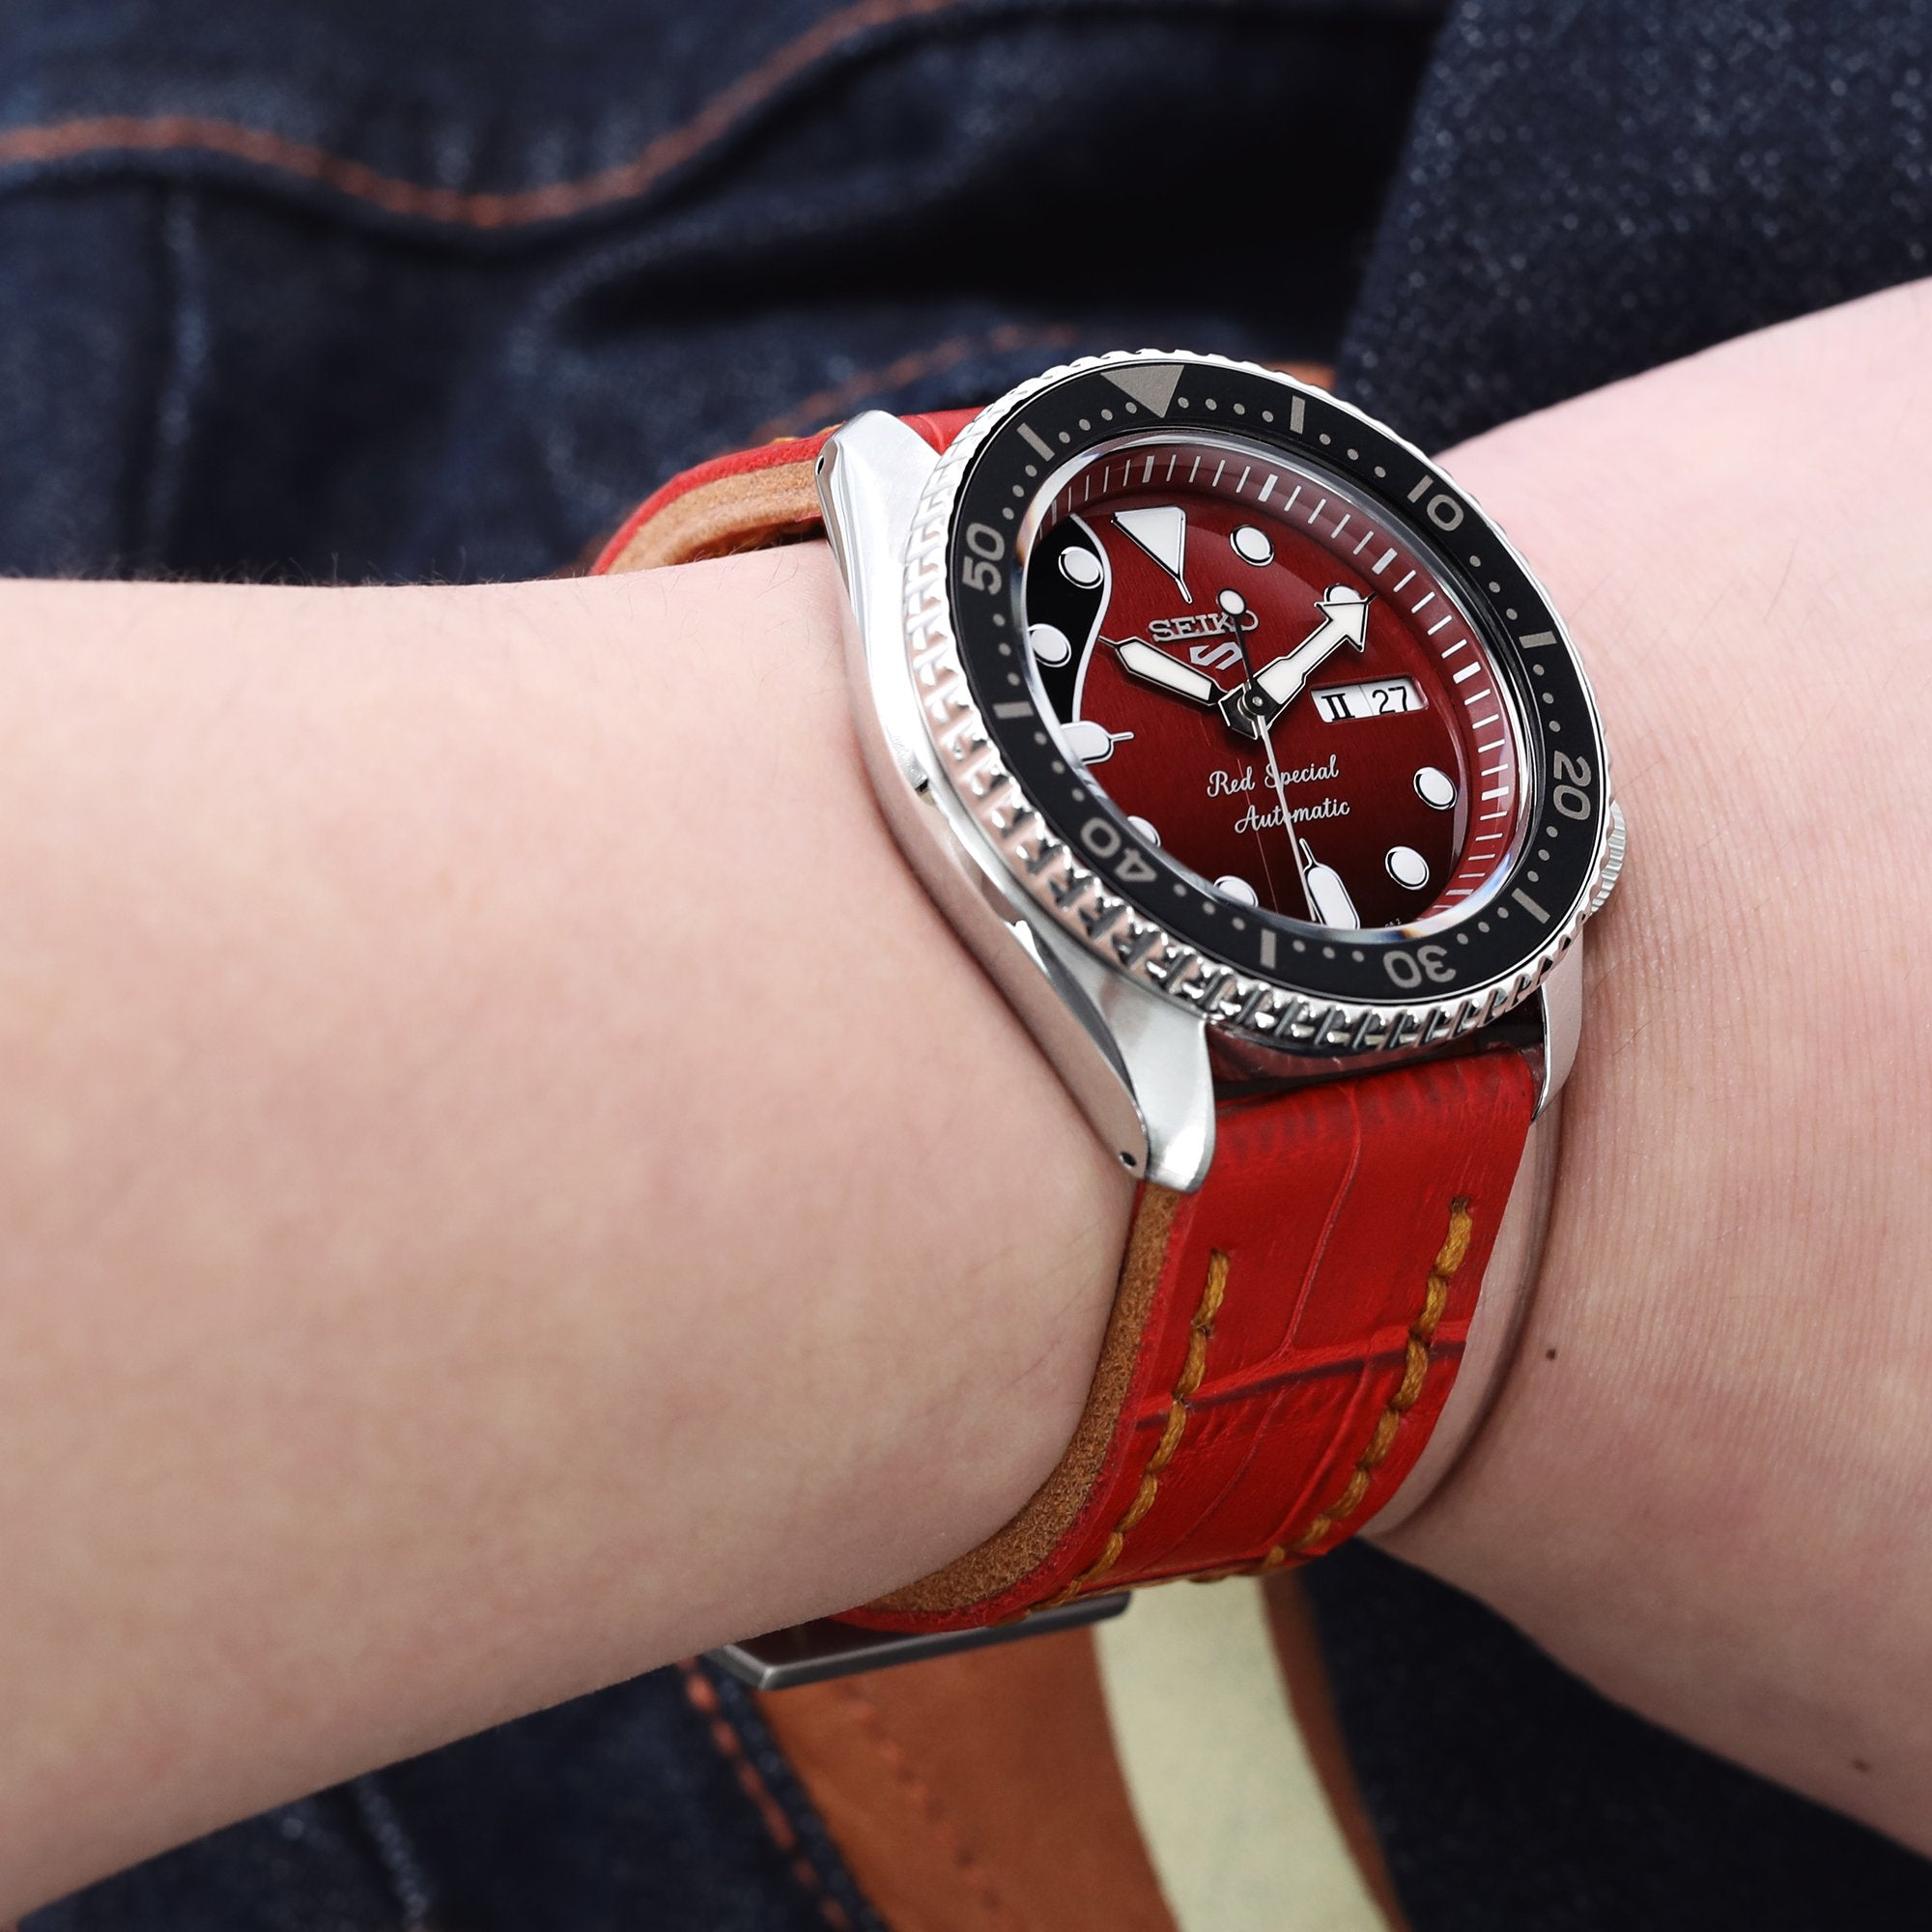 22mm MiLTAT Antipode Watch Strap Matte Red CrocoCalf in Tan Hand Stitches Strapcode Watch Bands